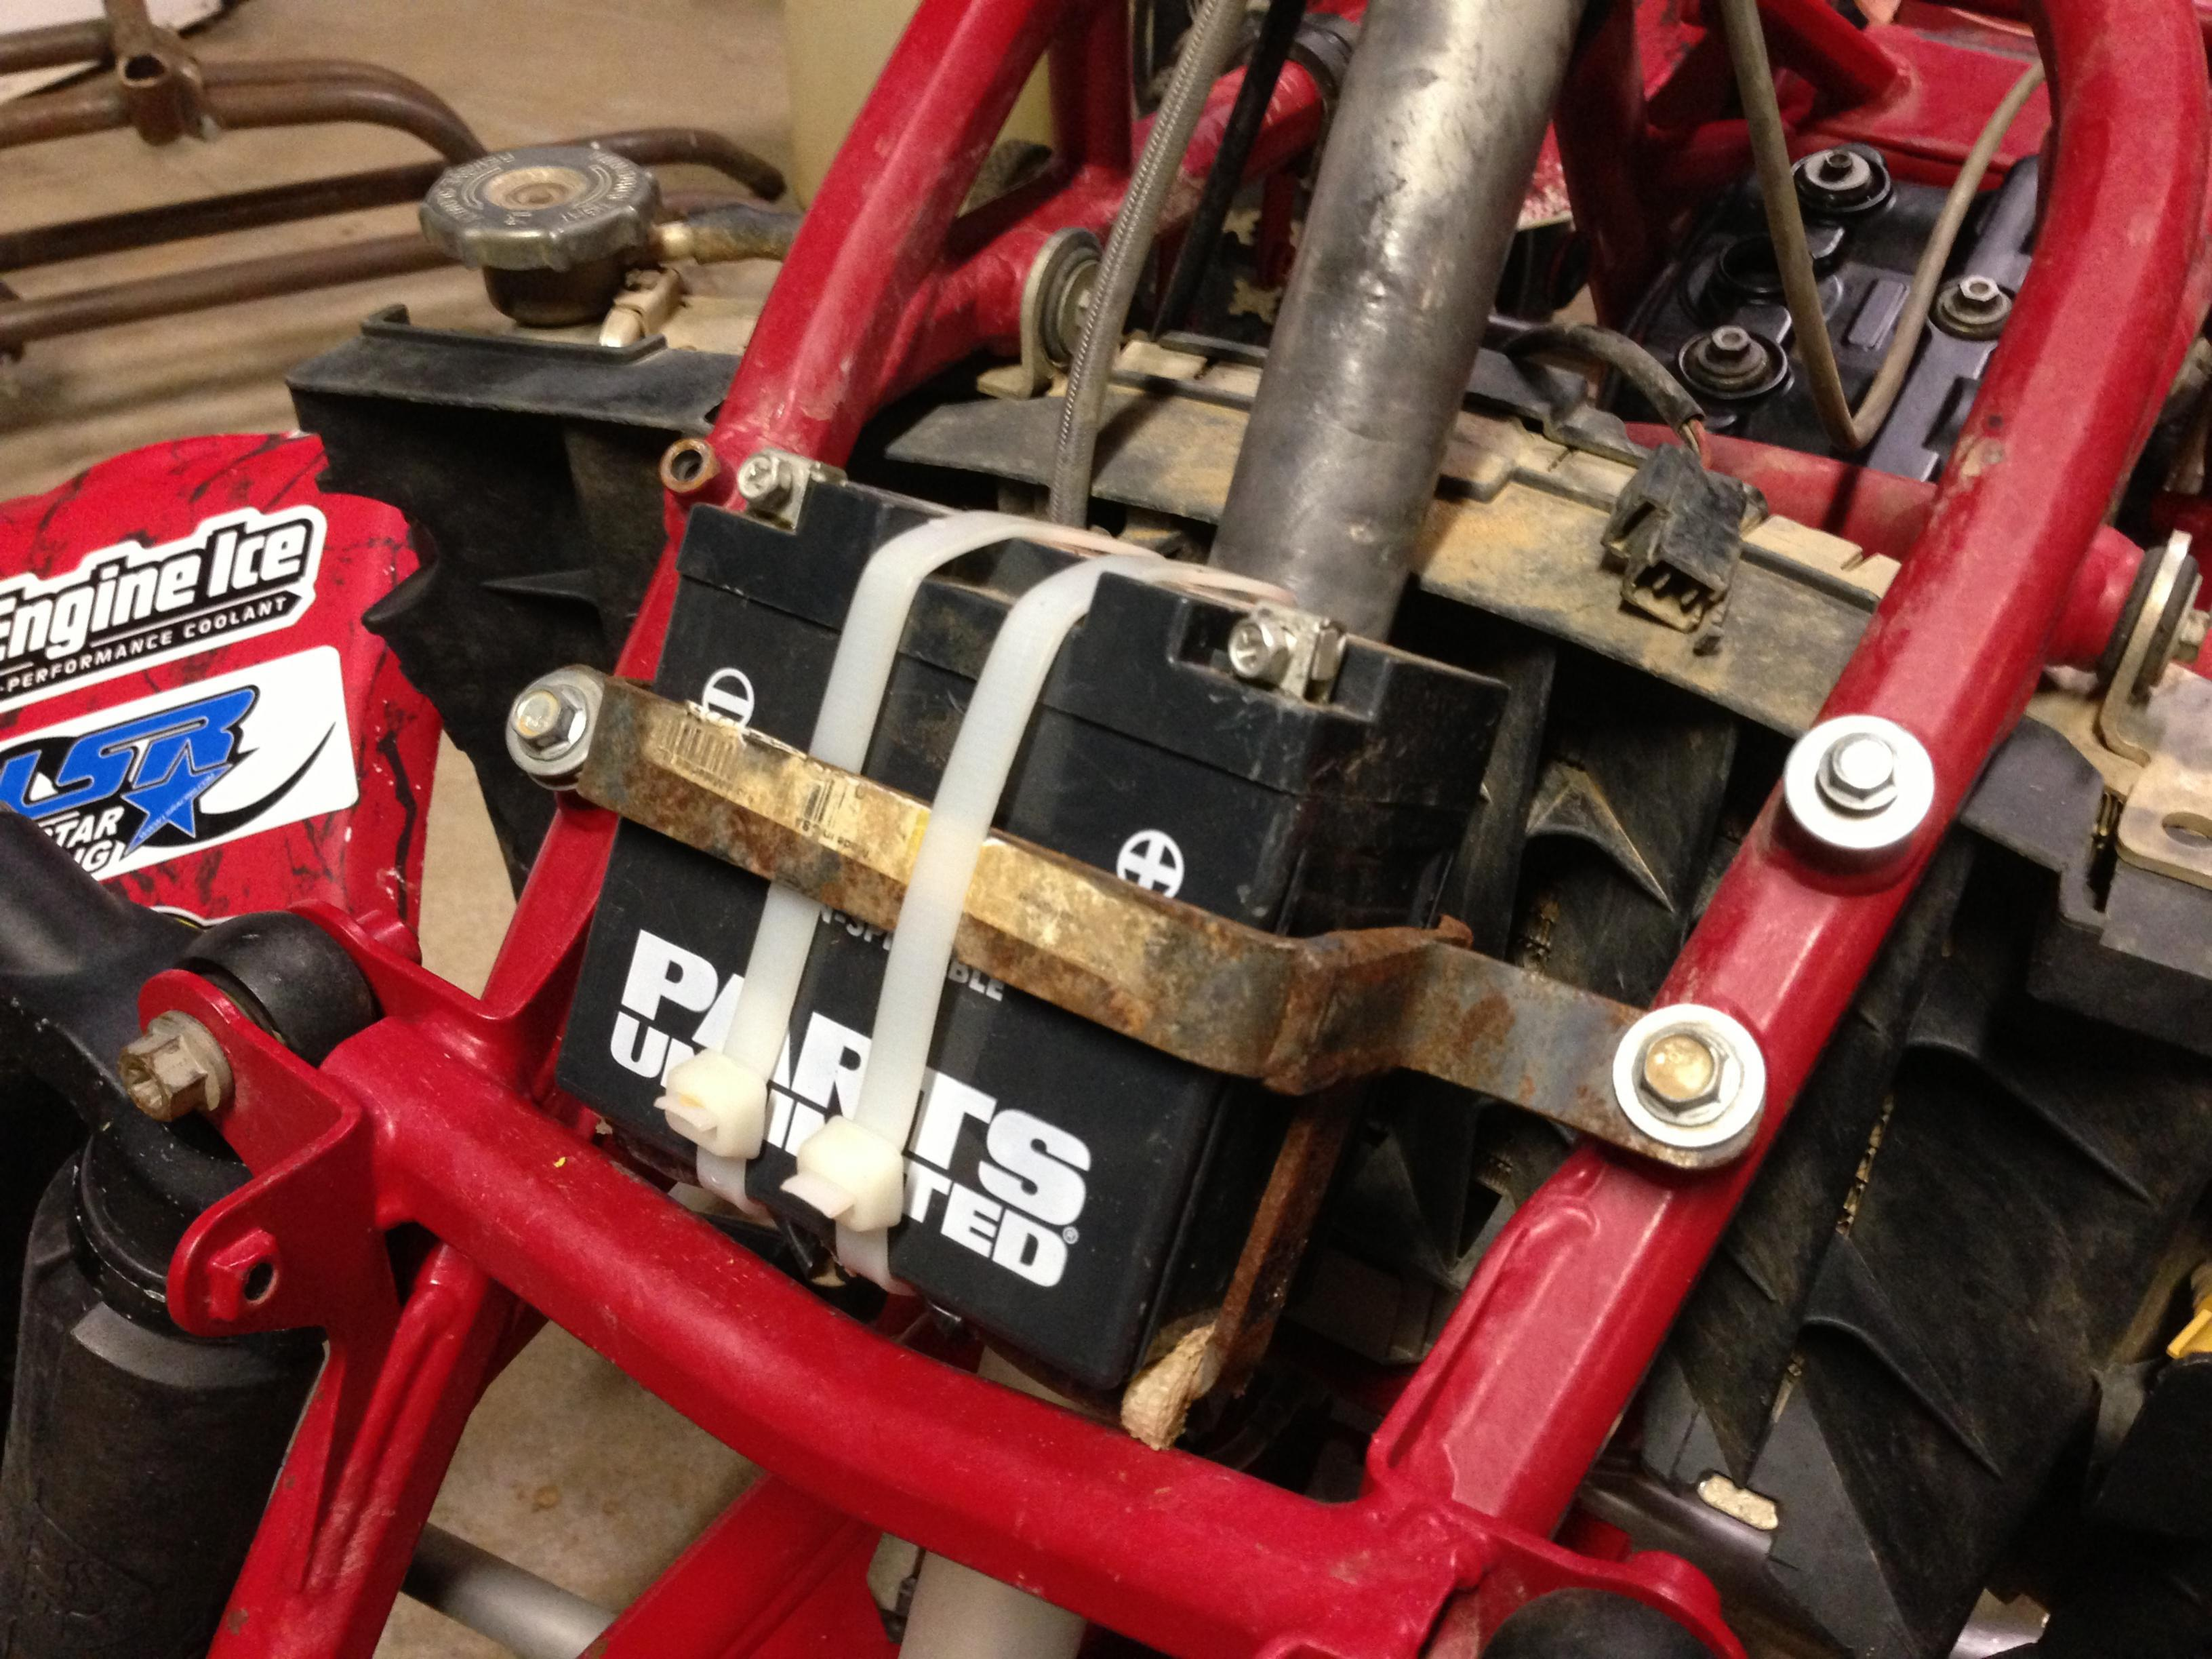 ... 09 sx engine, baldwin carb,wiring harness,Cdi, battery relocation box,  ...